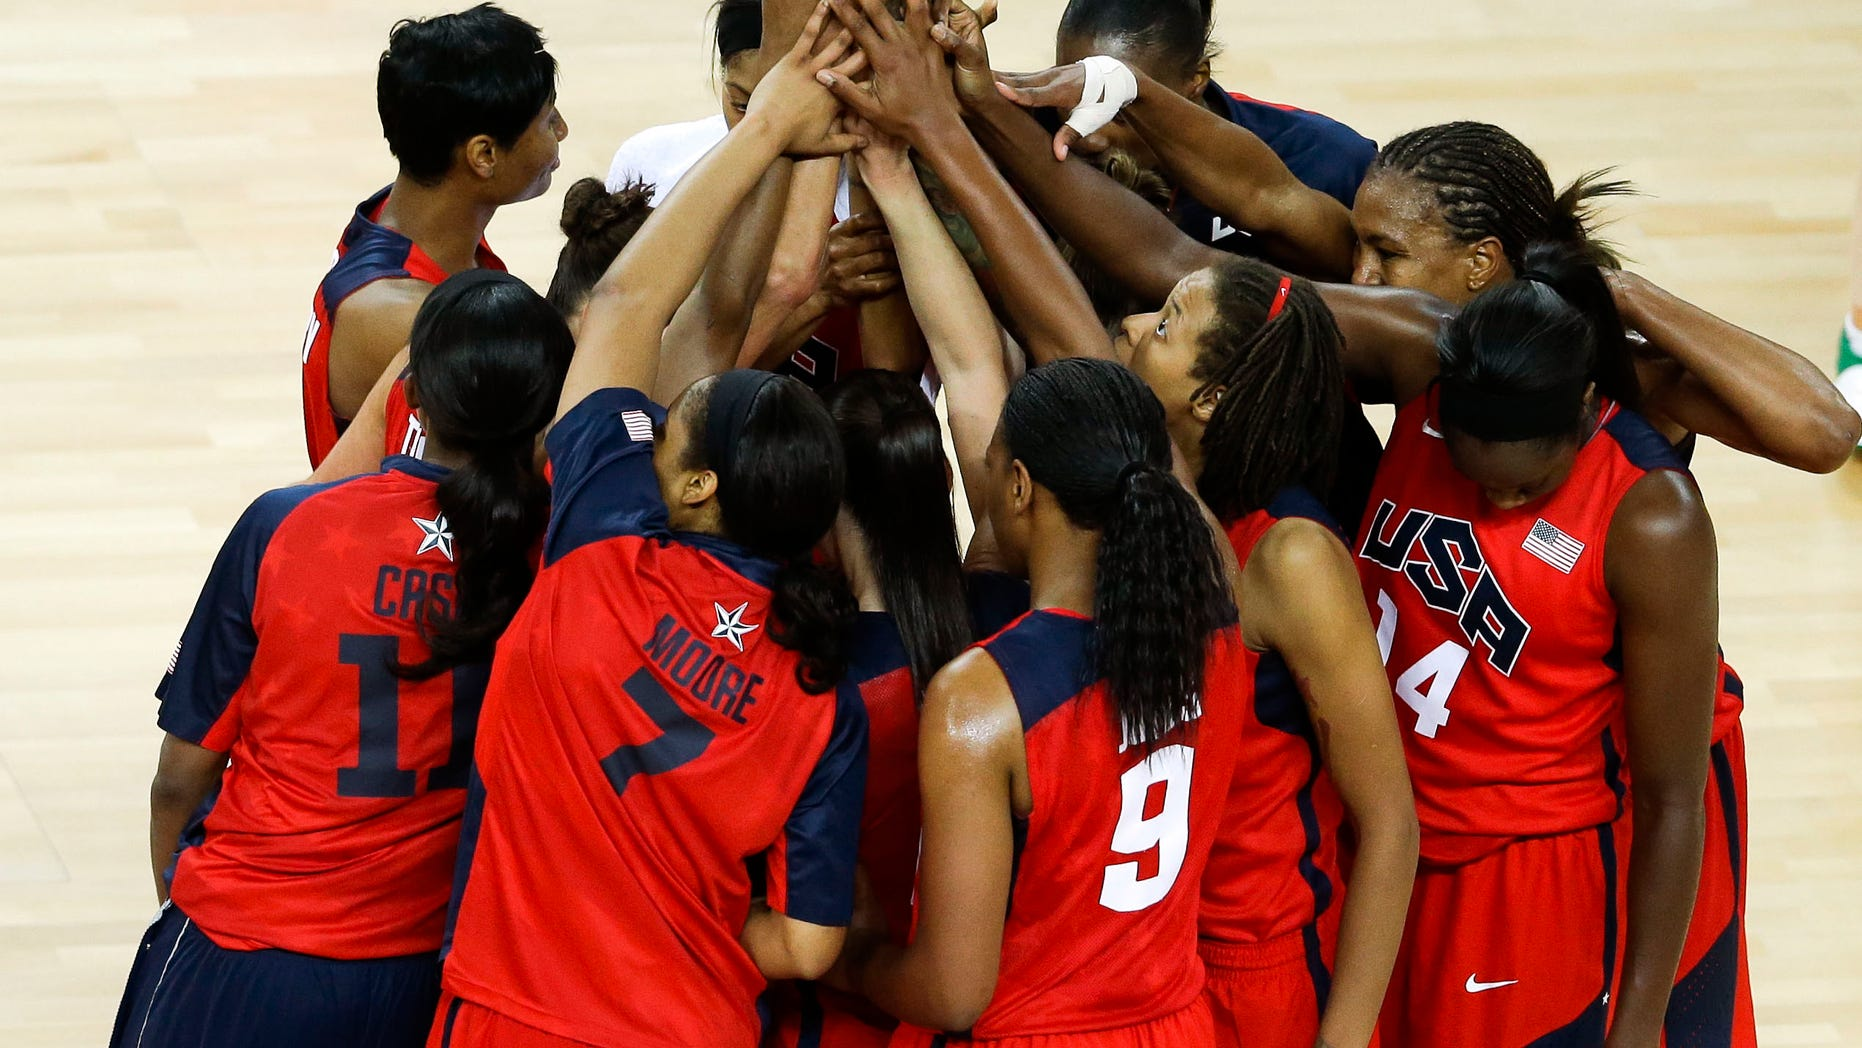 The United States team gathers at half court after beating Australia in a women's basketball semifinal game at the 2012 Summer Olympics, Thursday, Aug. 9, 2012, in London. (AP Photo/Victor R. Caivano)